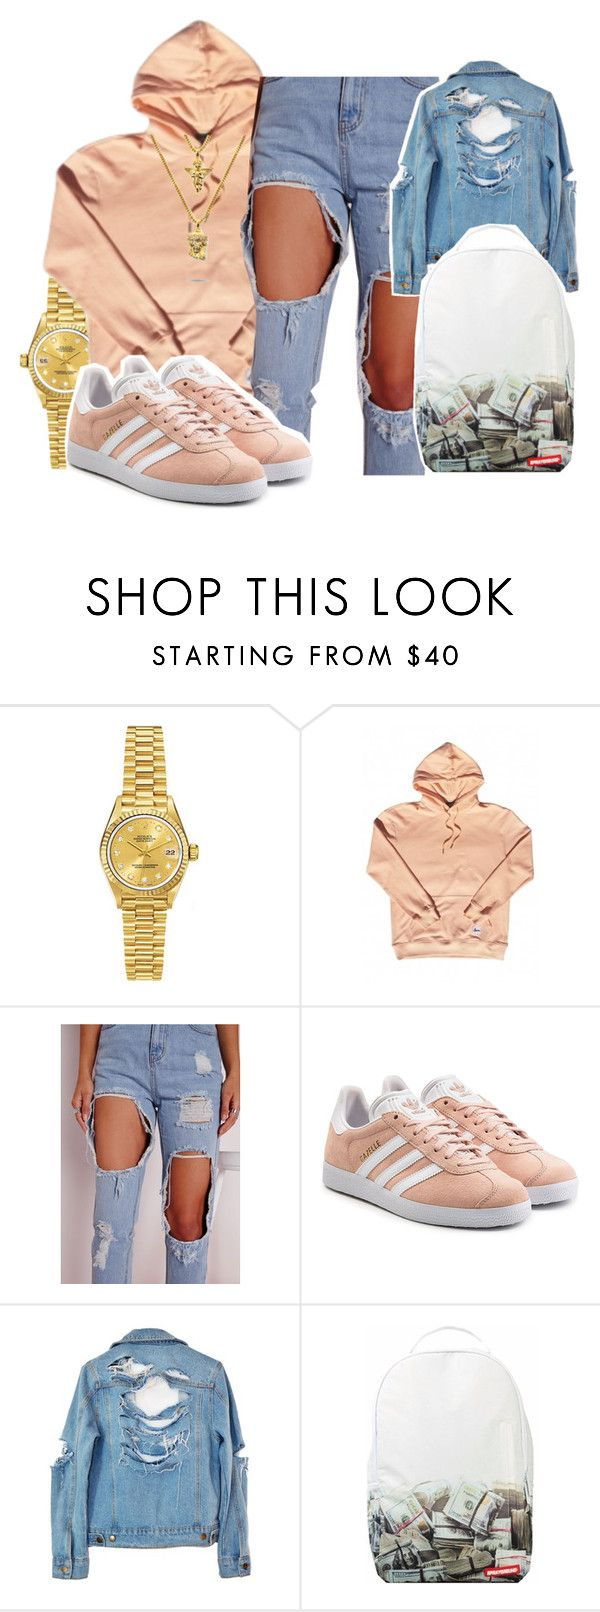 """$ave Dat Money ~ Lil Dicky"" by retrovintagepizza on Polyvore featuring Rolex, adidas Originals, High Heels Suicide, Sprayground and The Gold Gods"